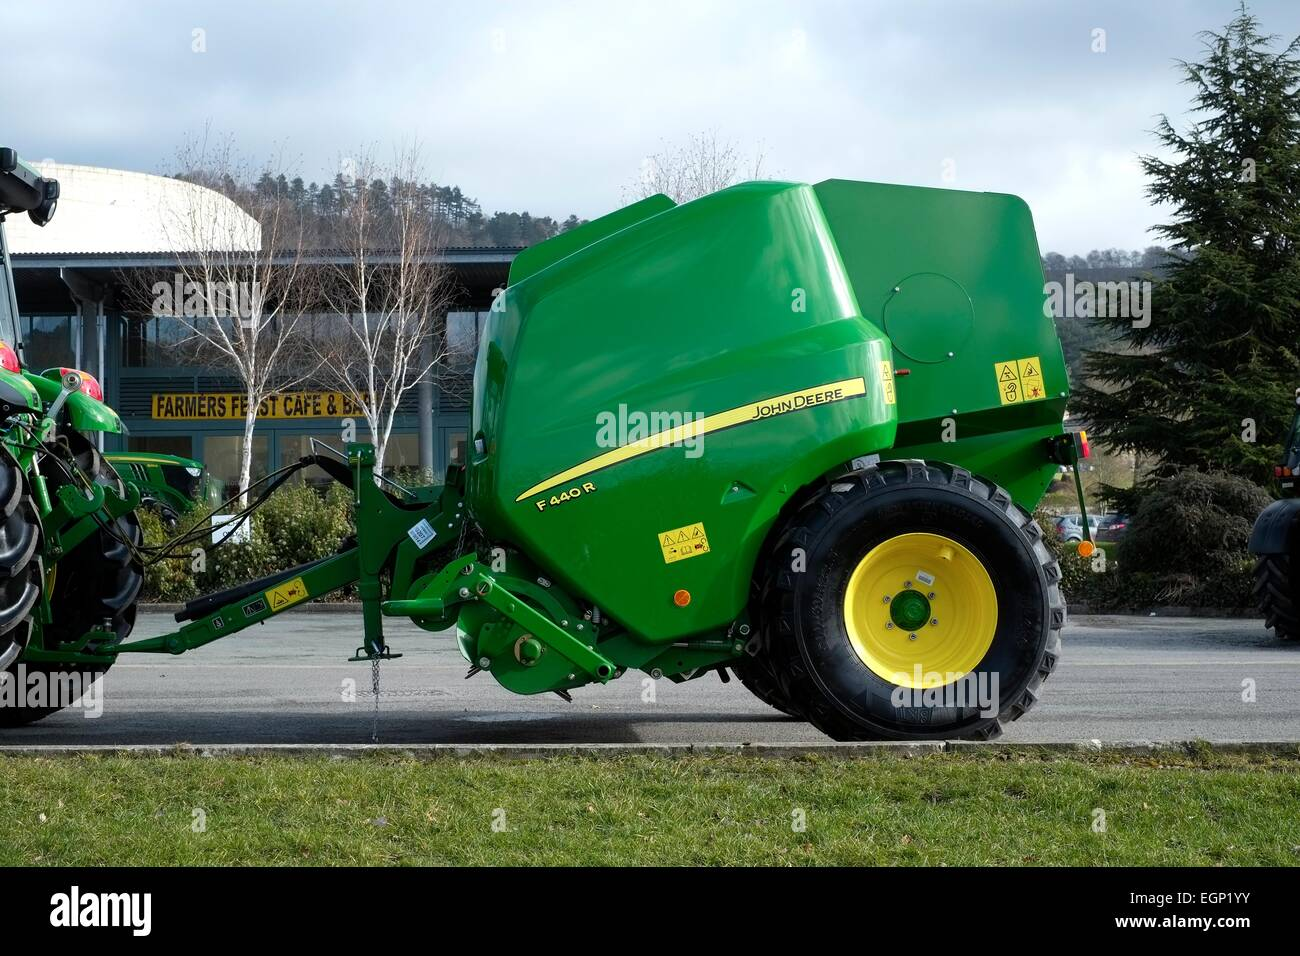 Hay Baler Uk Stock Photos & Hay Baler Uk Stock Images - Alamy